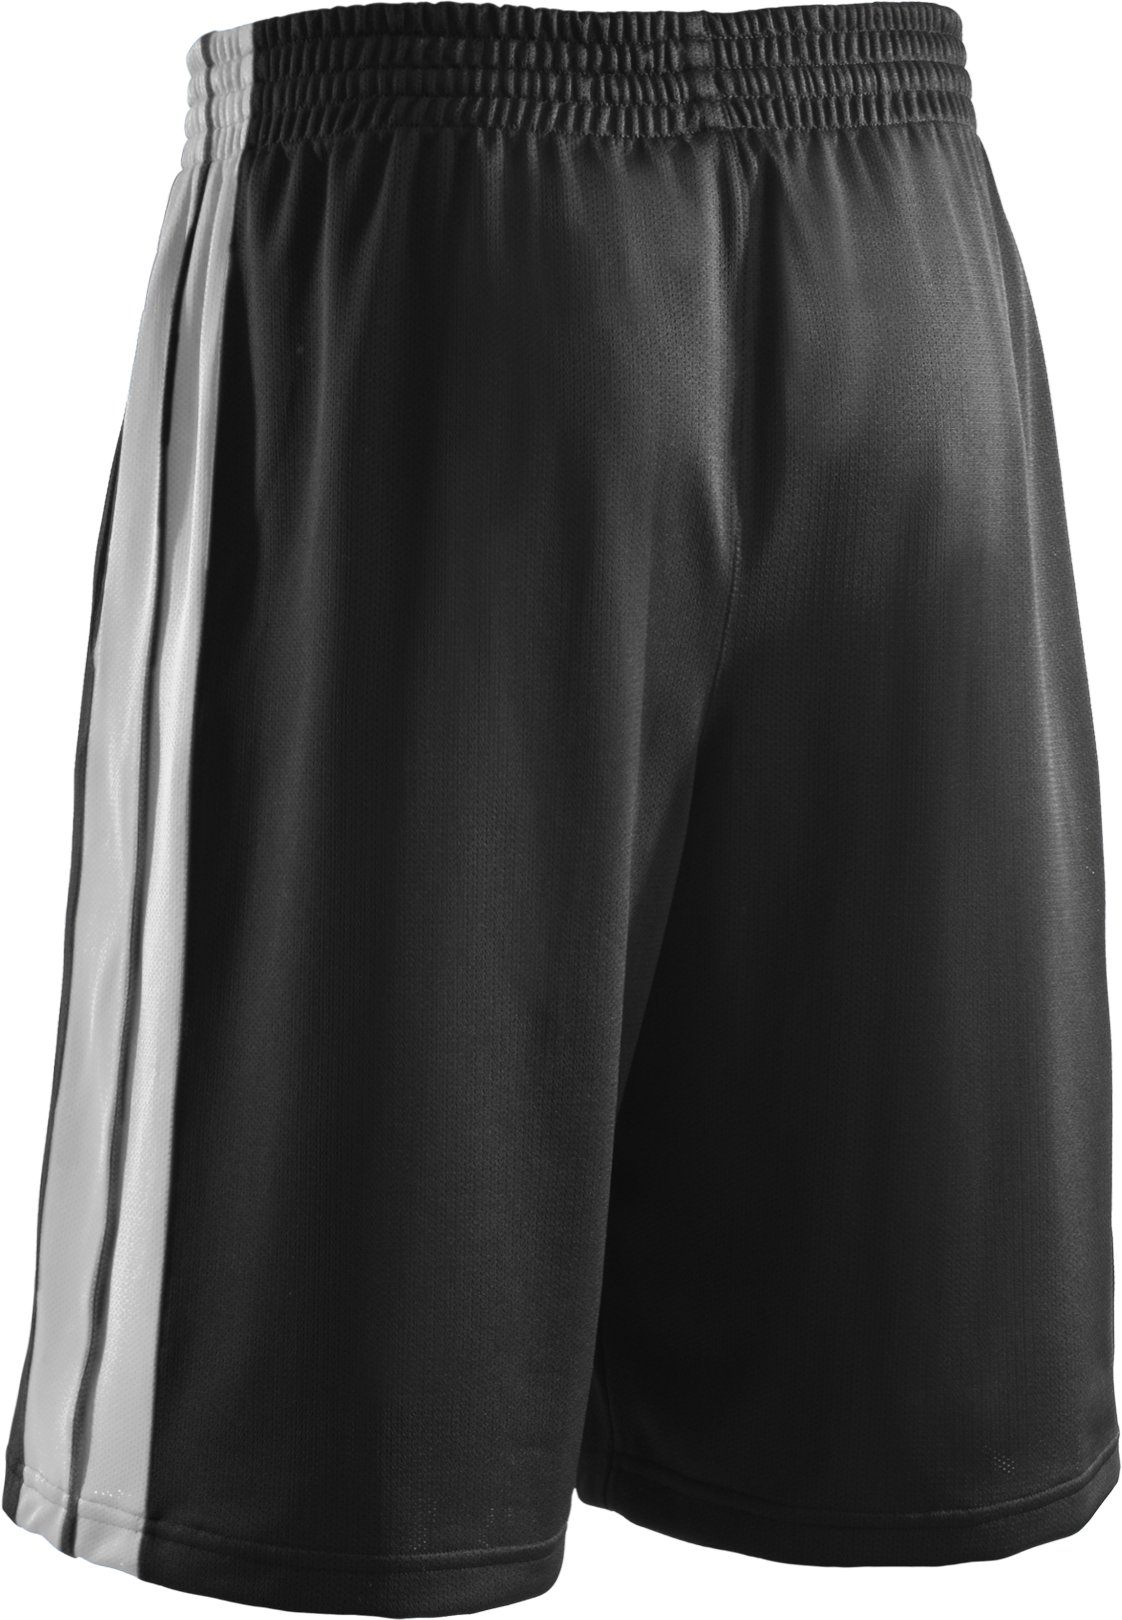 "Men's 10"" Basketball Practice Shorts, Black ,"